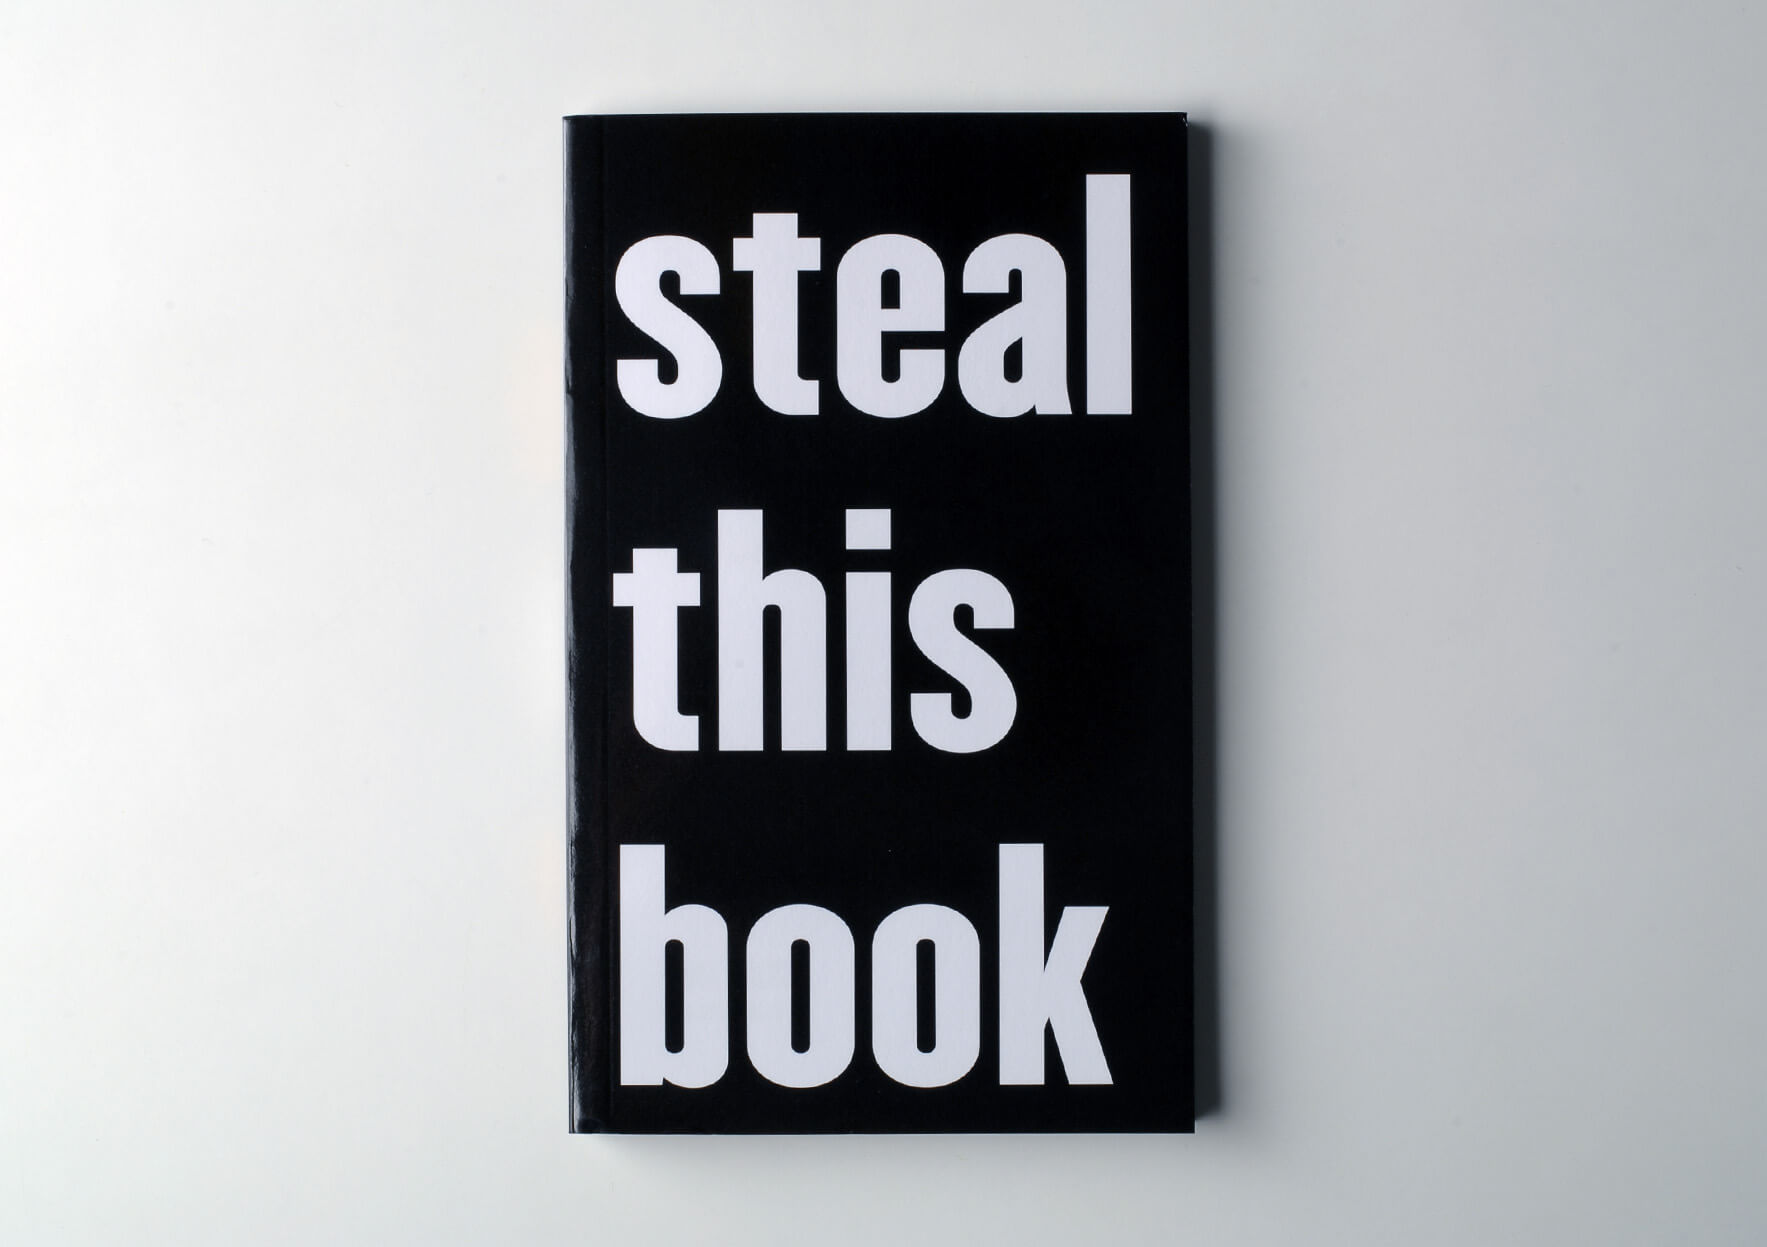 | Steal this book | ProjecteSD